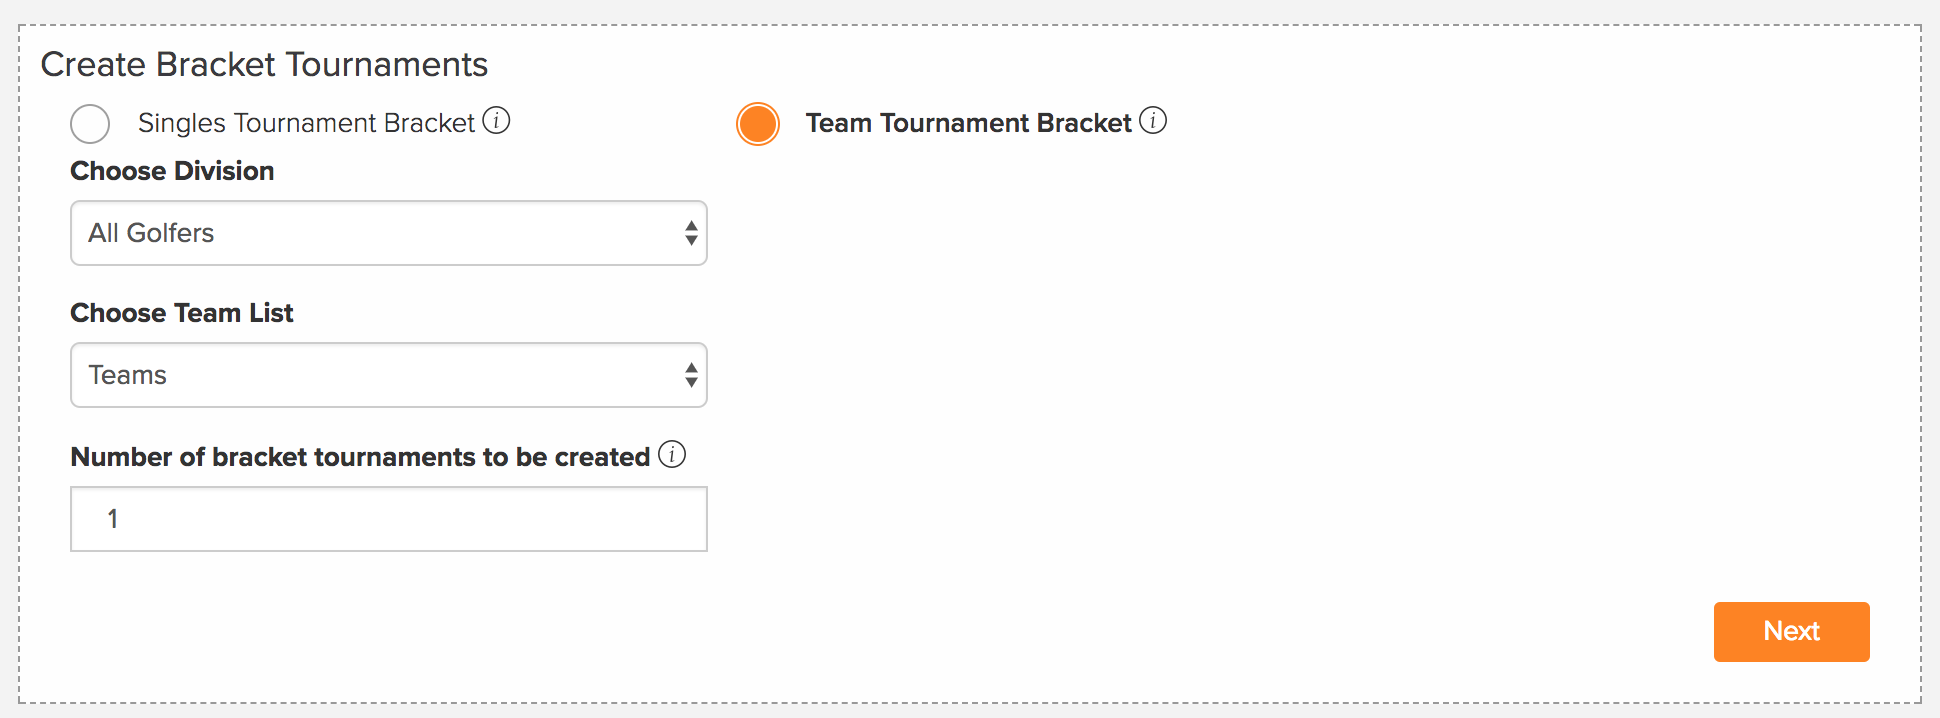 golfgenius team bracket tournament setup options